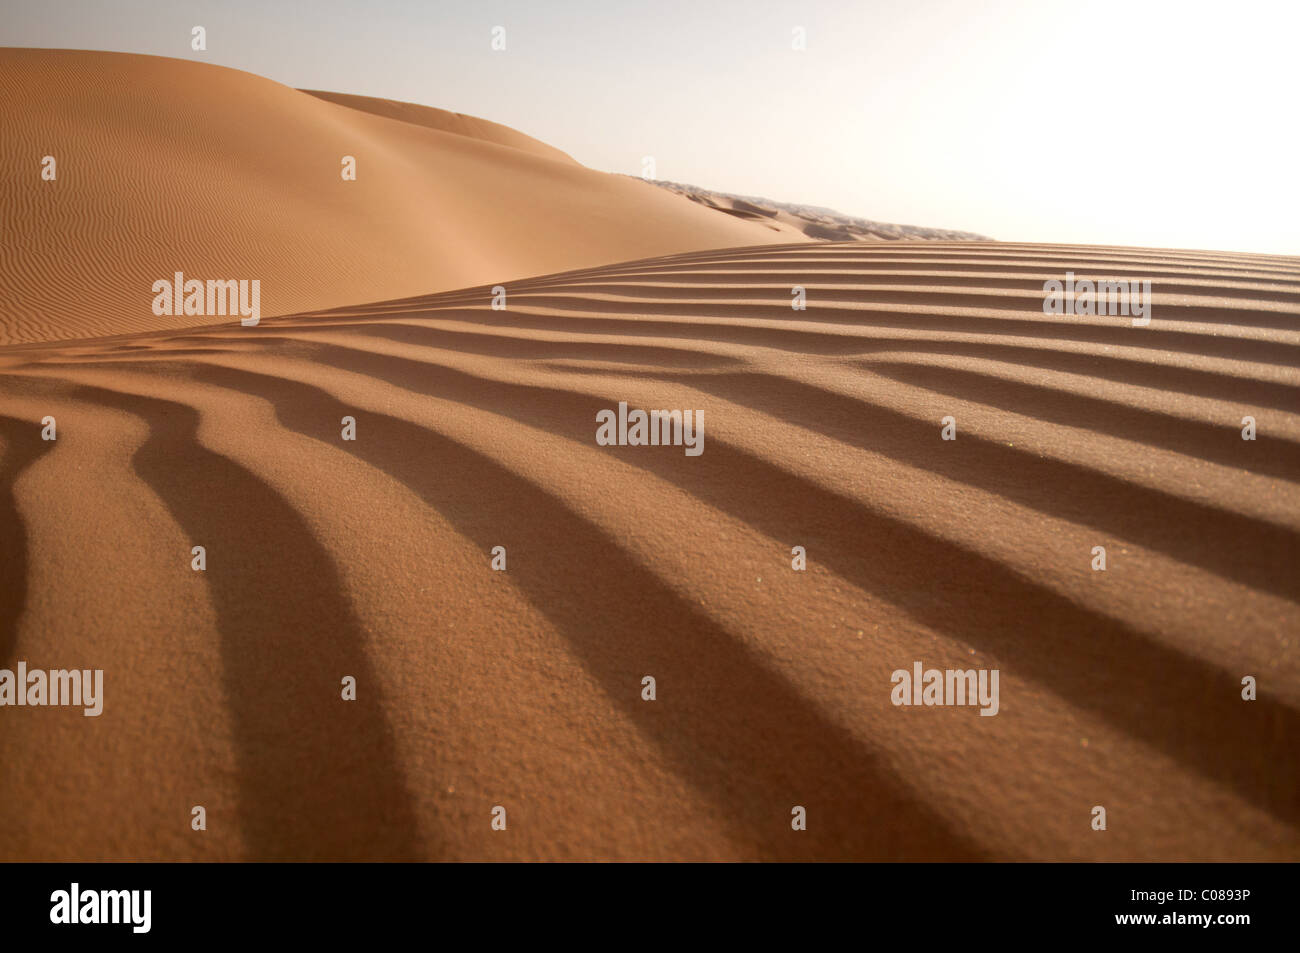 La formation des dunes de sable parfait Photo Stock